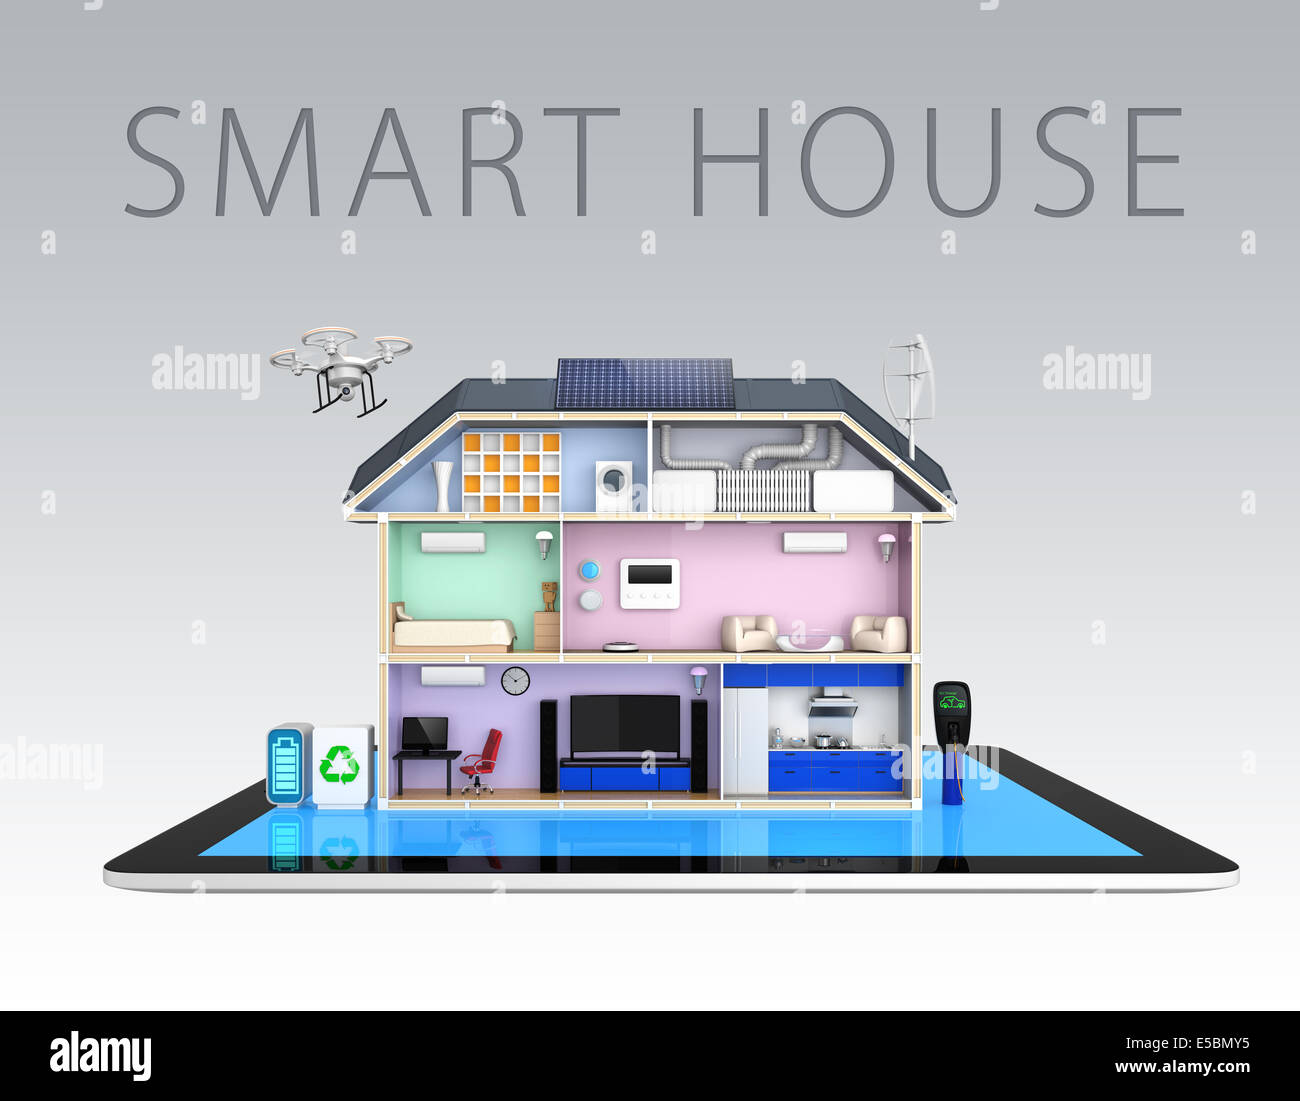 Smart House Diagram Home Network Connectivity Wire Electrical Wiring Diagrams For Homes With Energy Efficient Appliances On Tablet Pcwith Text